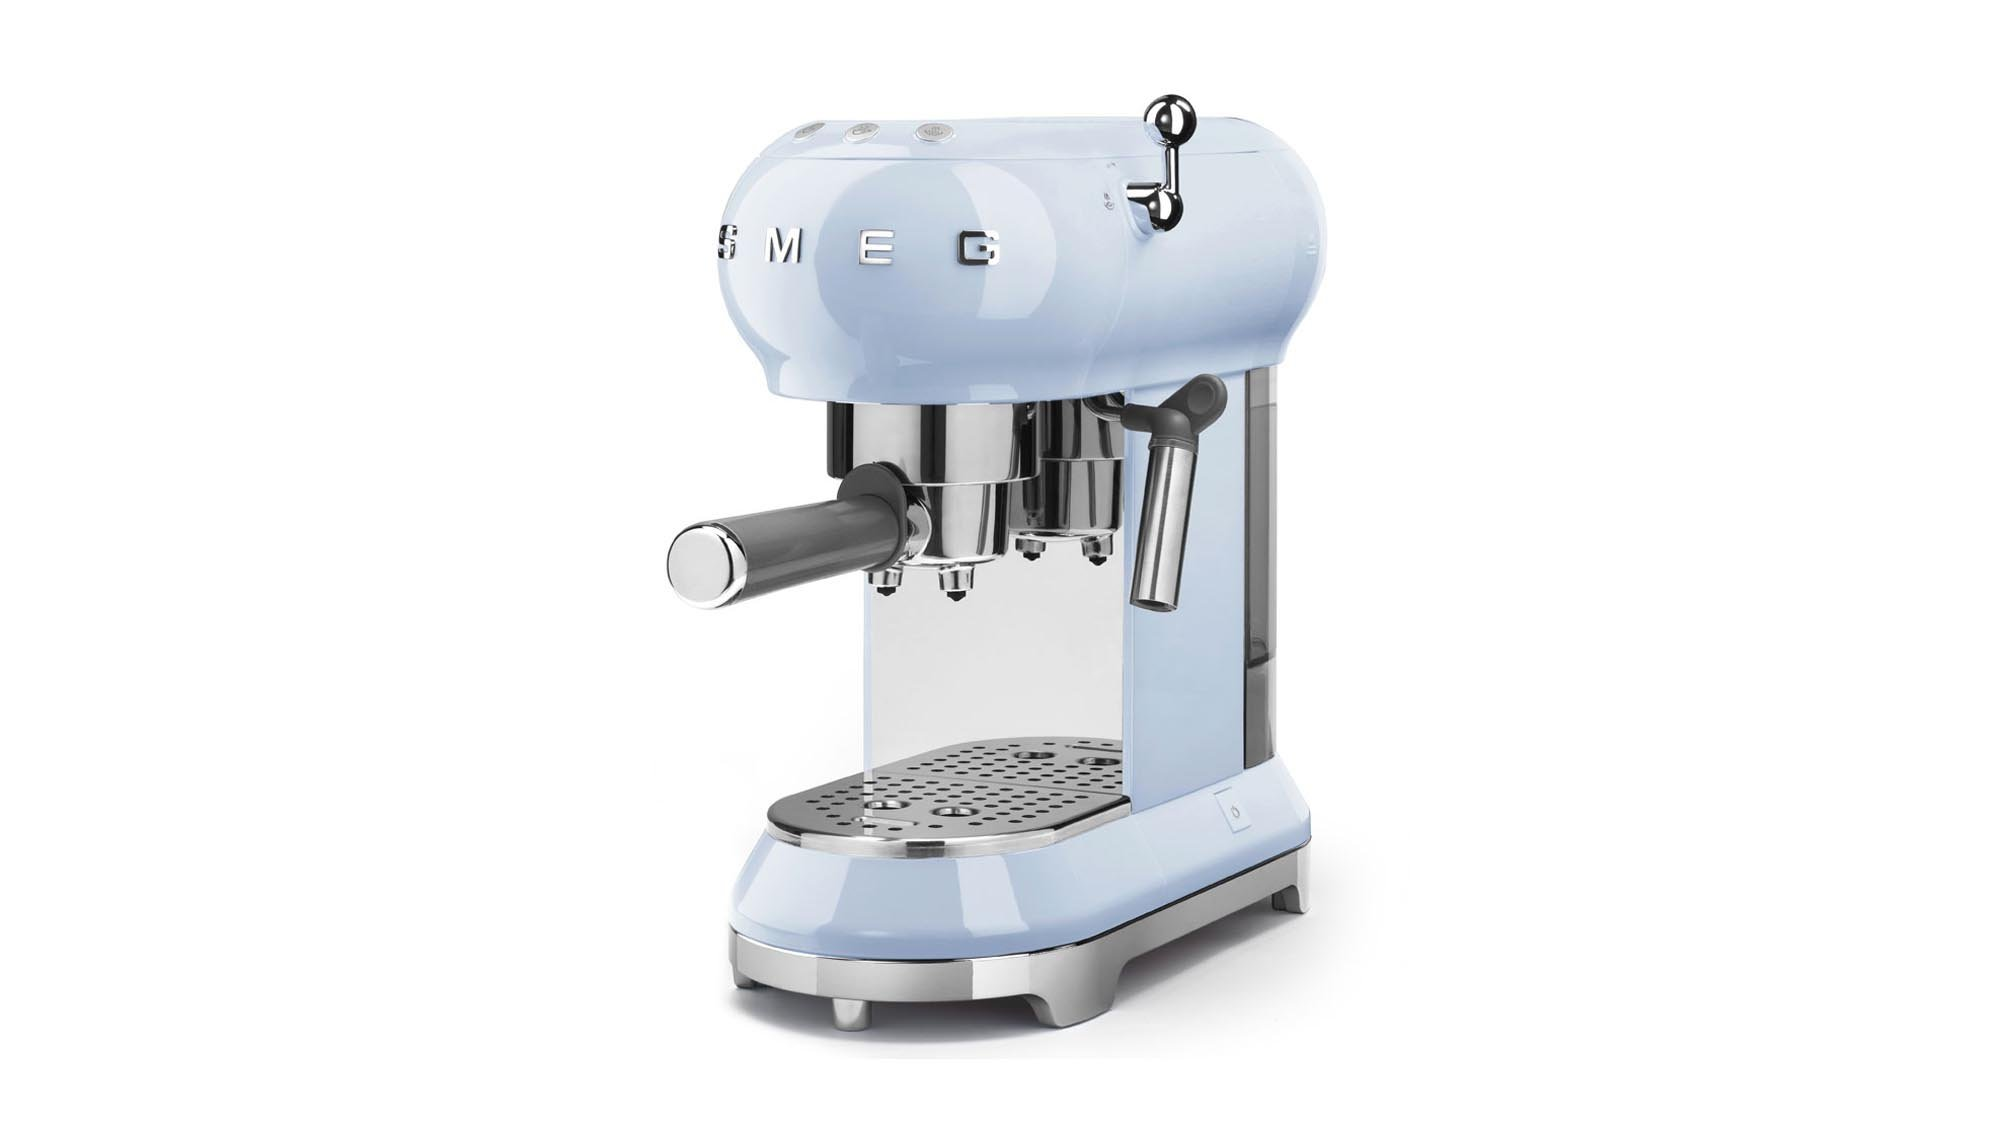 smeg ecf01 espresso coffee machine review a basic effective manual espresso machine that looks. Black Bedroom Furniture Sets. Home Design Ideas